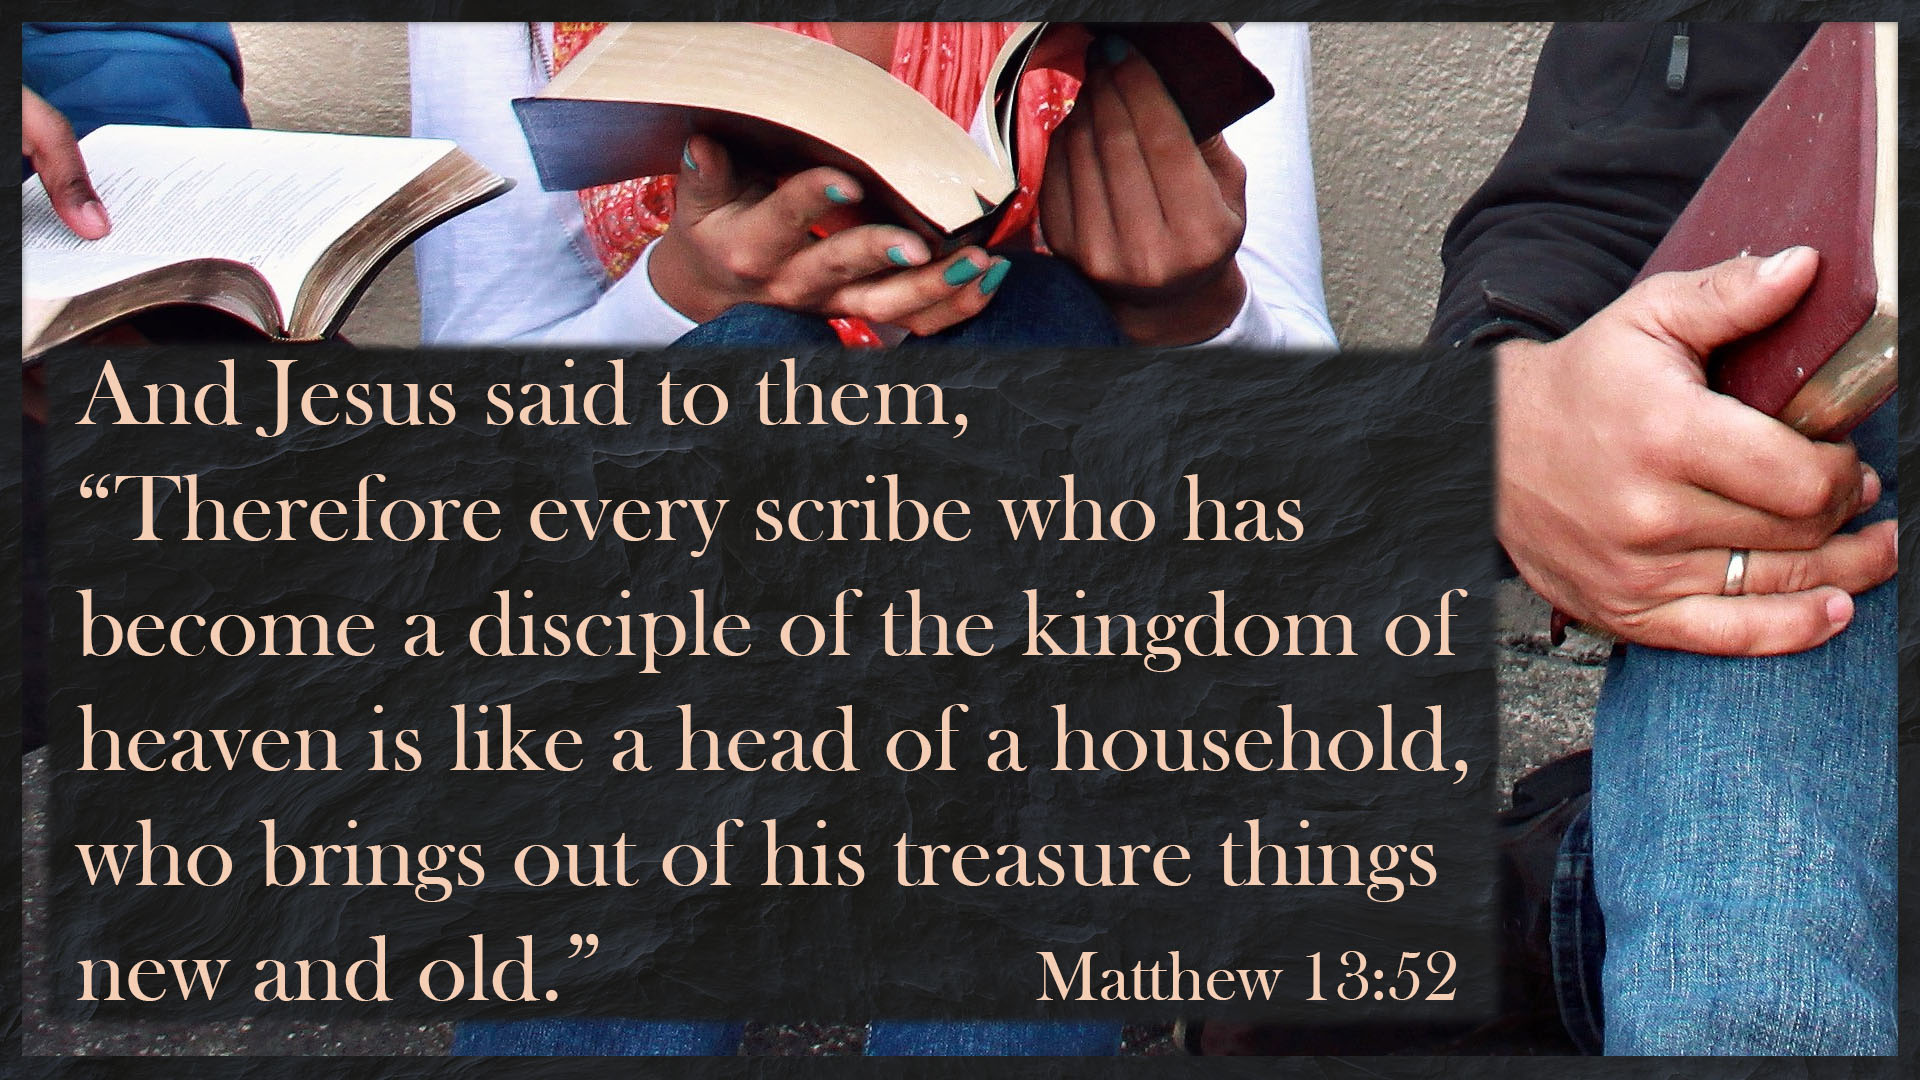 "Matthew 13:51.htm, ""Have you understood all these things?"" They said to Him,""Yes."" Matthew 13:52 And Jesus said to them, ""Therefore every scribe who has become a disciple of the kingdom of heaven is like a head of a household, who brings out of his treasure things new and old. David Reese, Mythoughts, Thoughtsofgod, Thought of God"